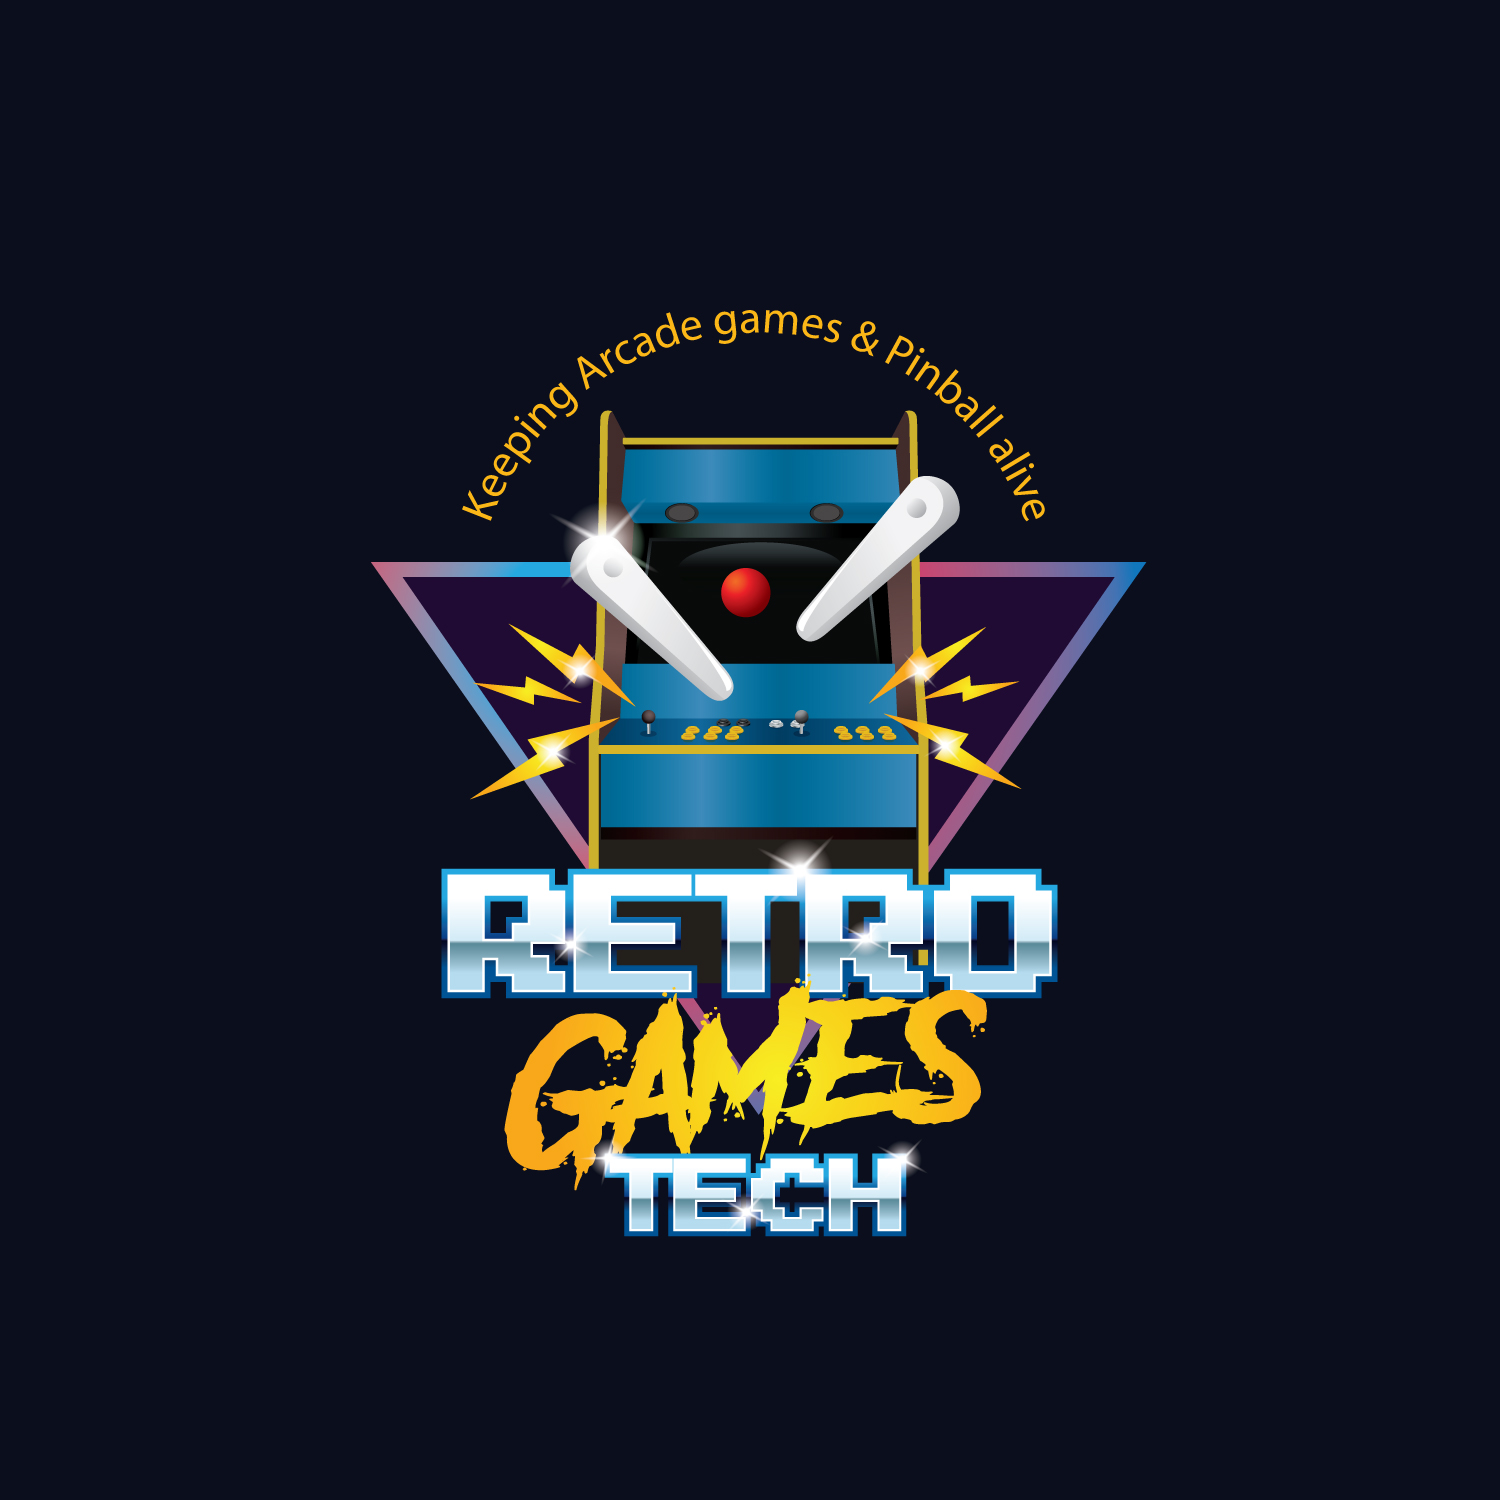 Playful Personable Games Logo Design For Name Retro Games Tech Slogan Keeping Arcade Games Pinball Alive By Wisest Design Design 24113631